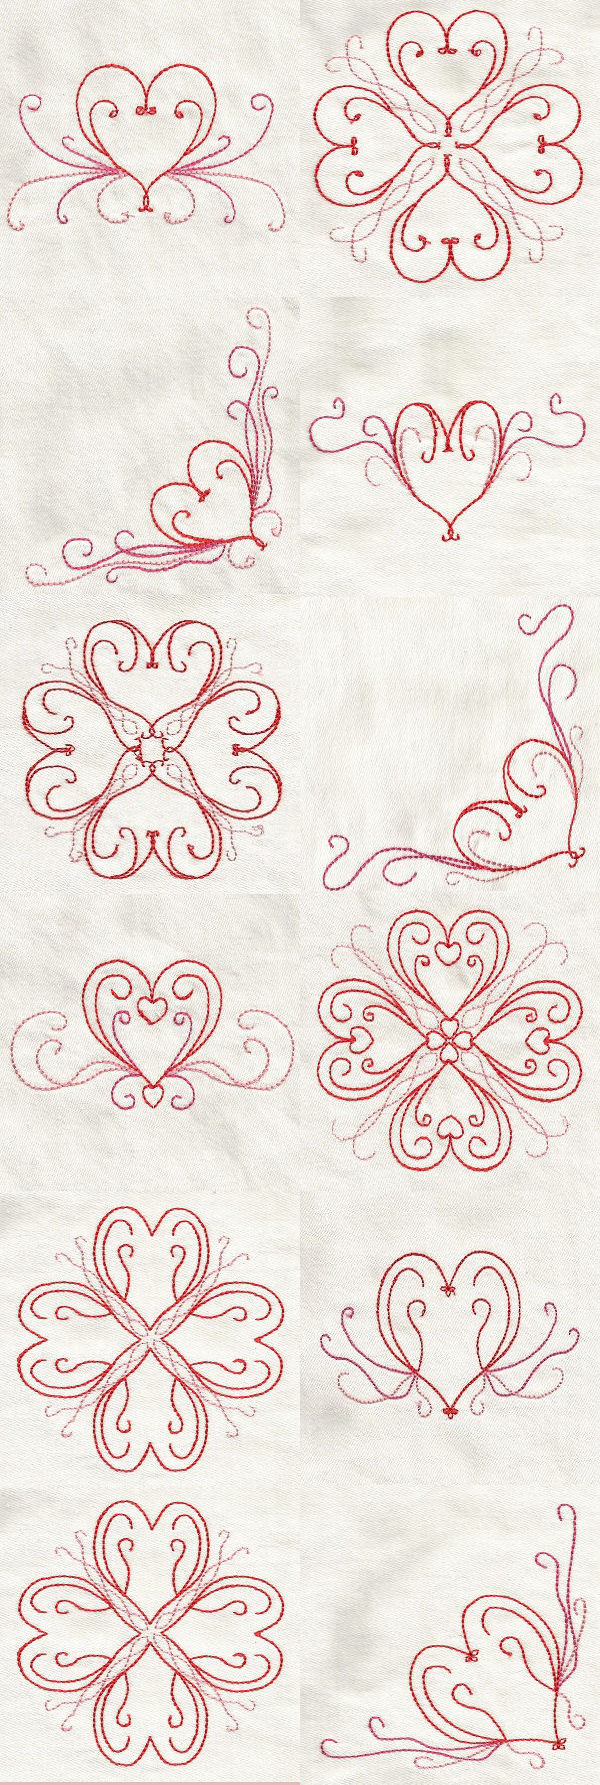 Heart Borders Embroidery Machine Design Details